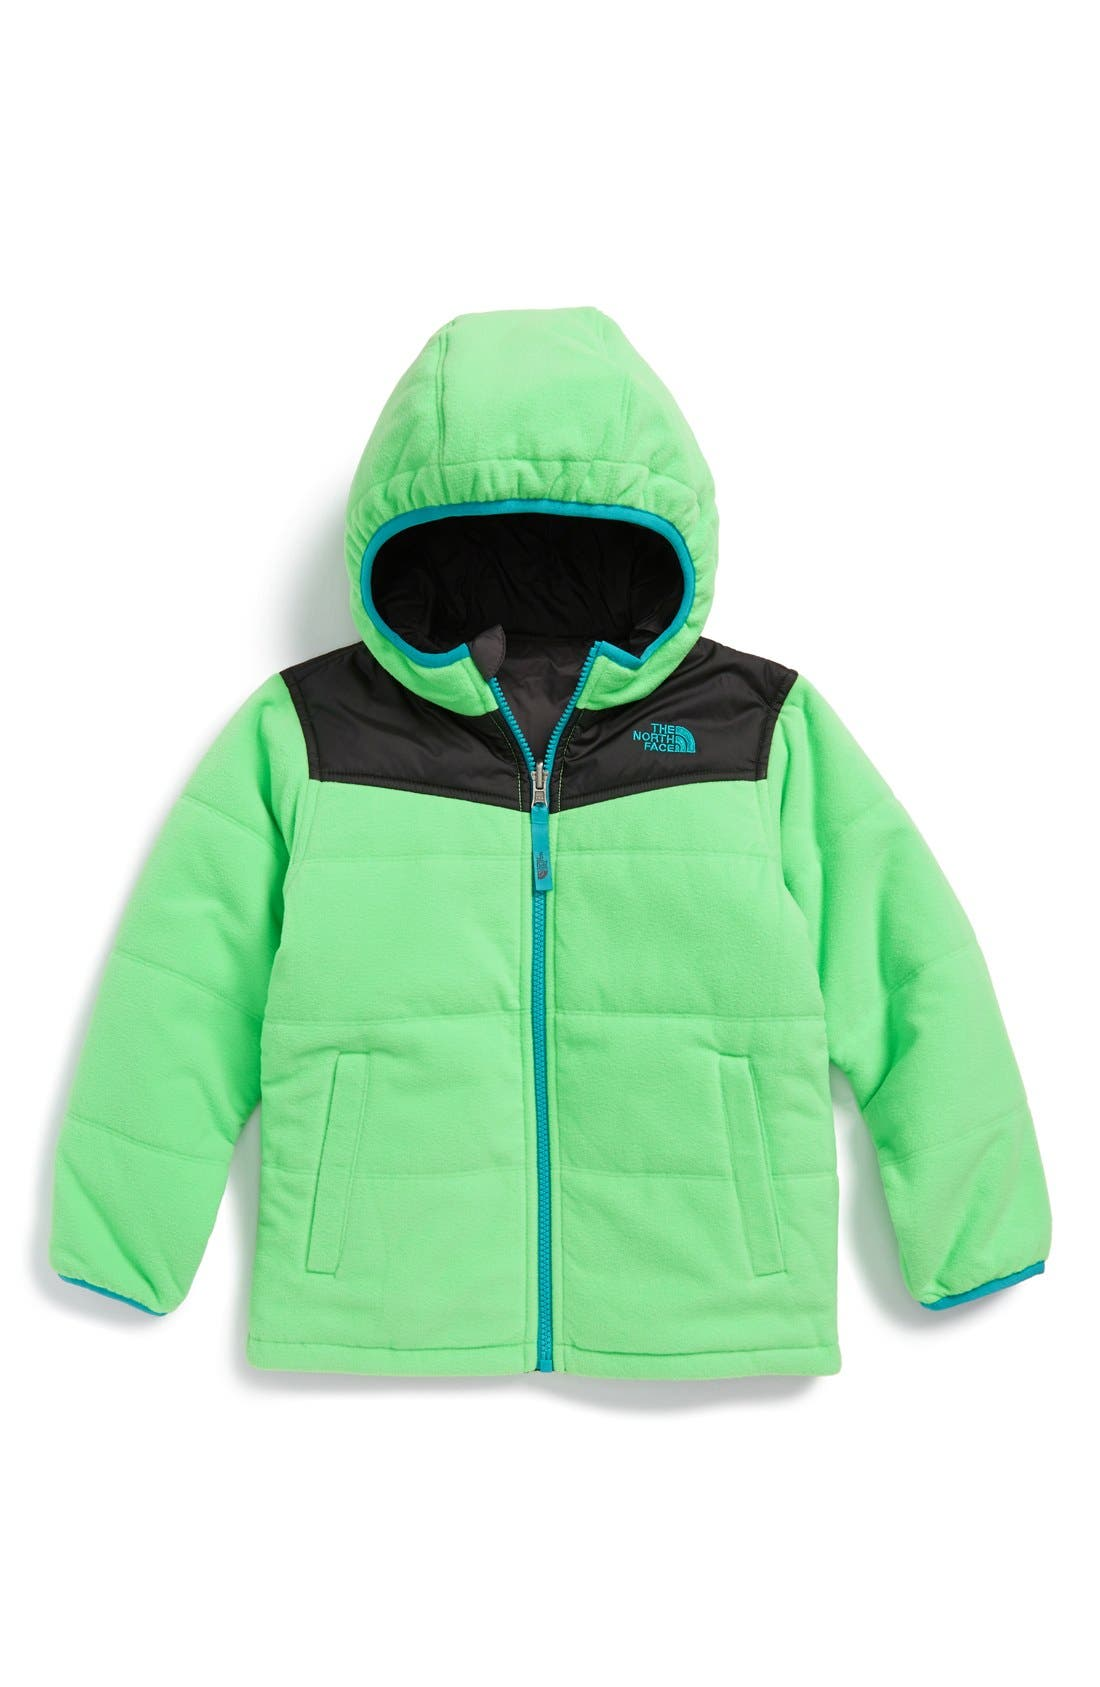 Alternate Image 1 Selected - The North Face 'True or False' Reversible Water Resistant Jacket (Toddler Boys & Little Boys)